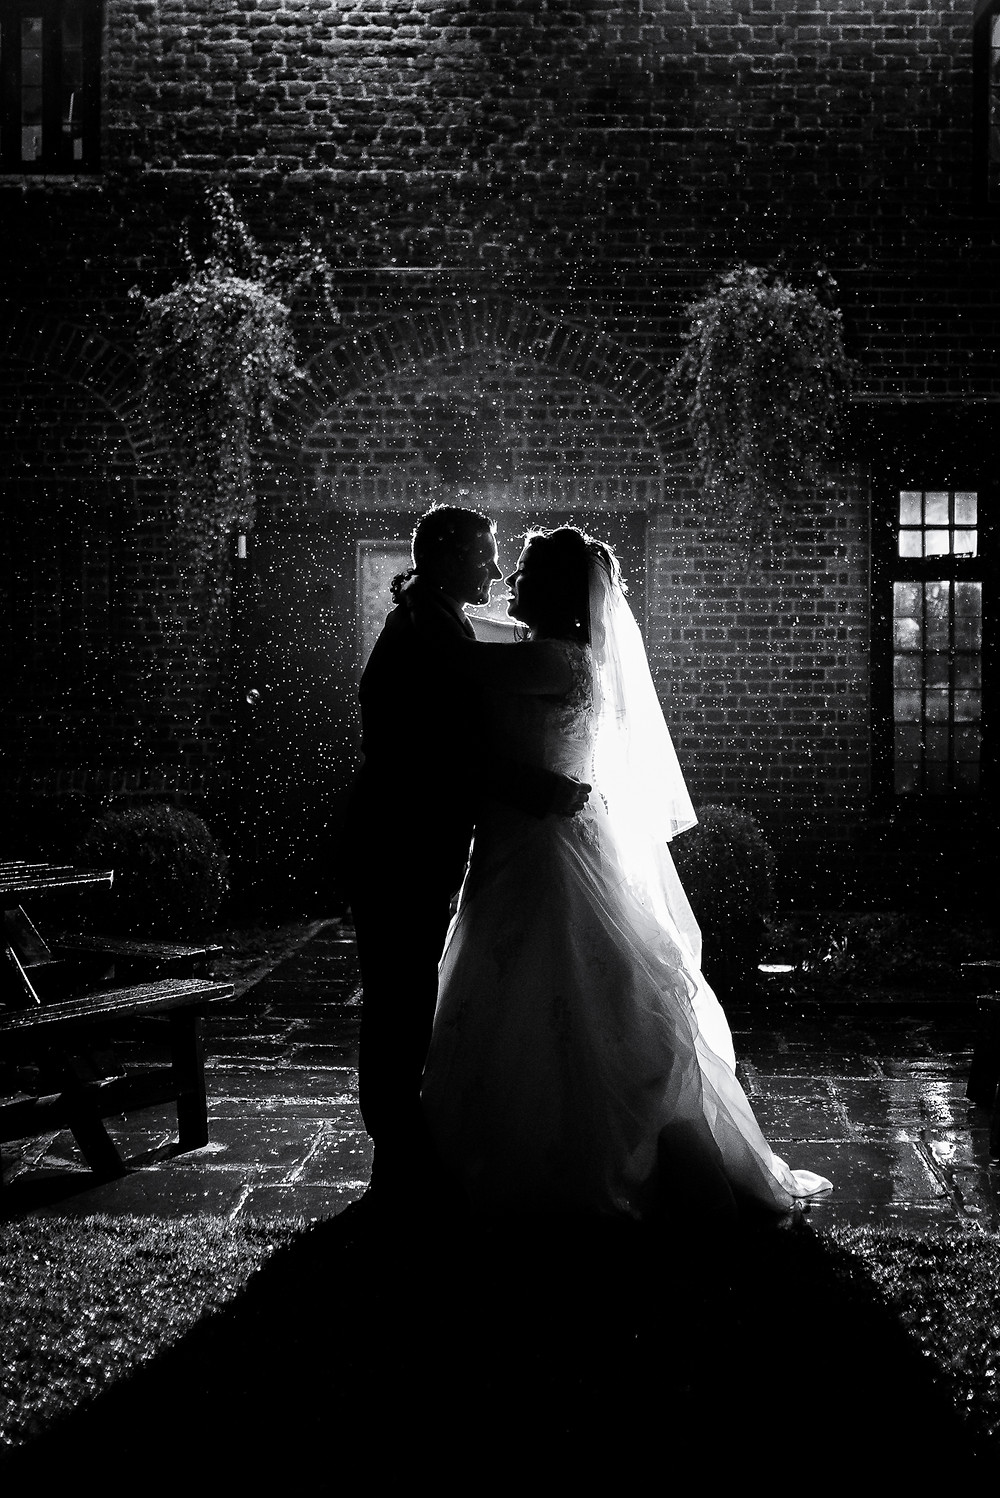 night time wedding shot